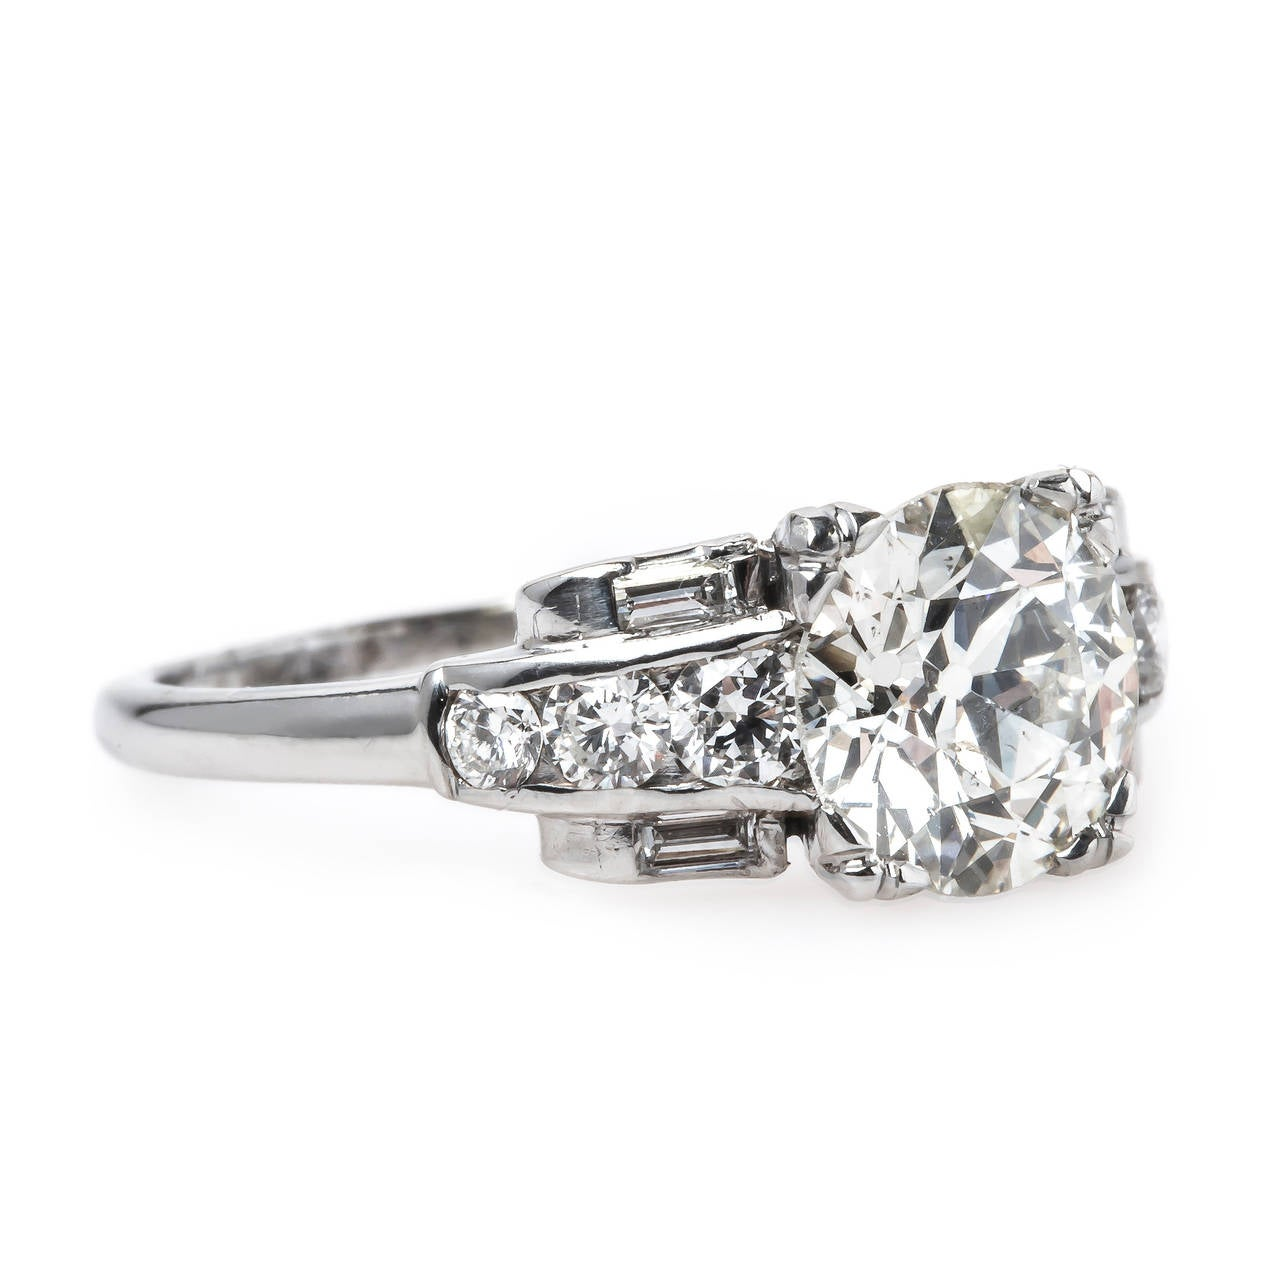 1950s Incredible 1 55 Carat Diamond Platinum Engagement Ring at 1stdibs